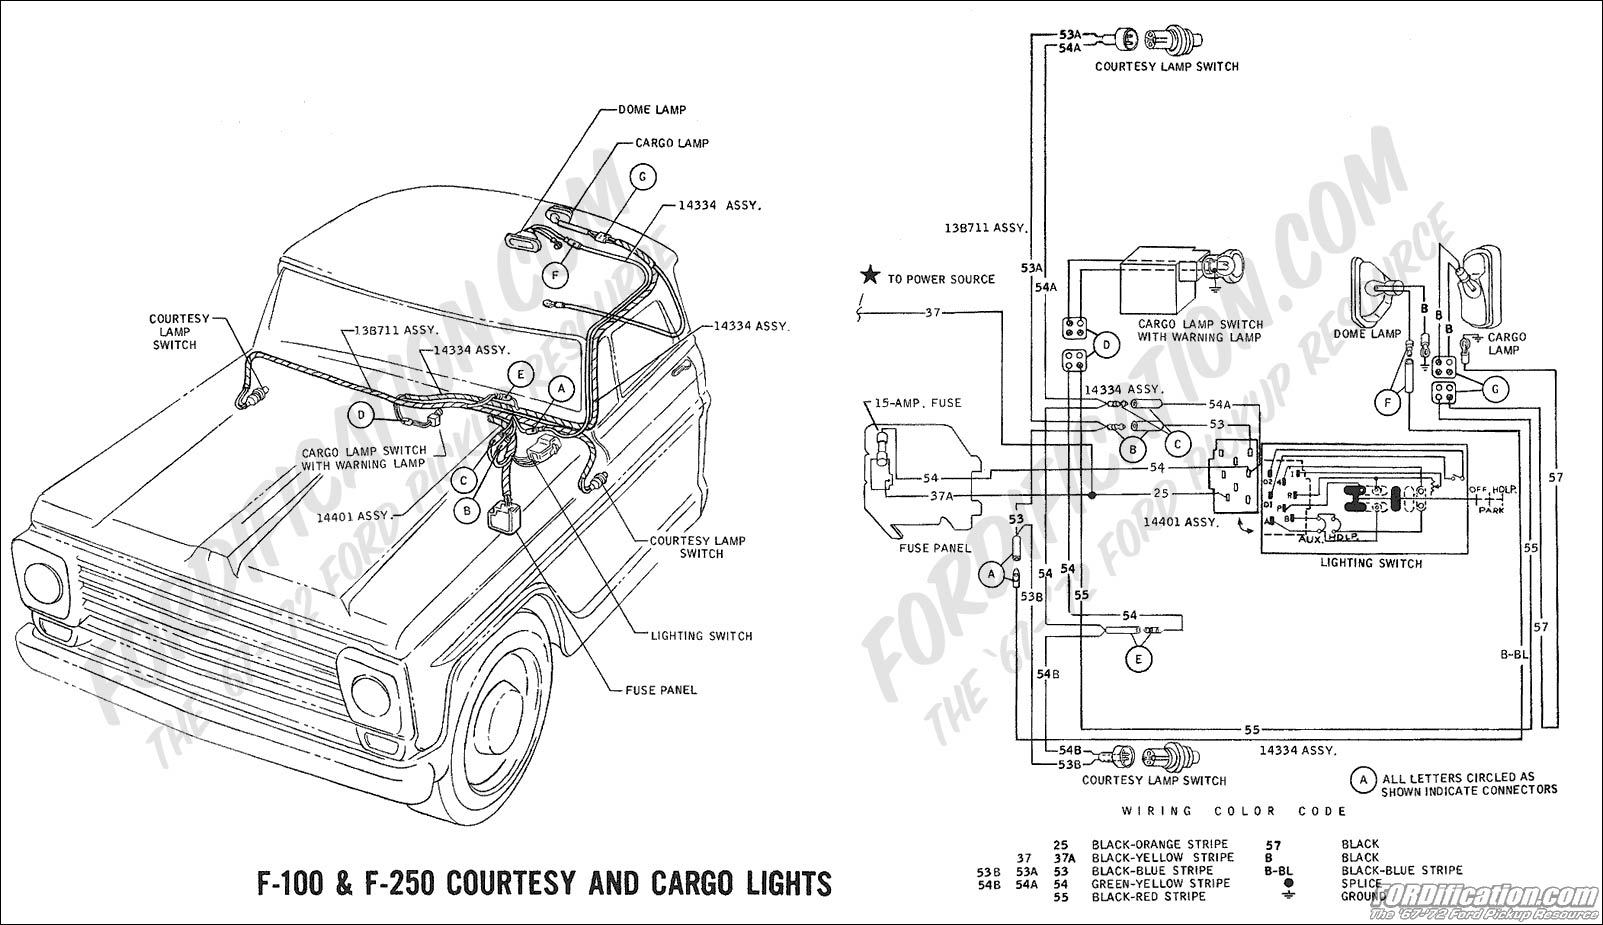 1972 F250 Wiring Diagram Schematics Voltage Regulator 1986 Ford F 350 F100 Archive Of Automotive U2022 2013 F350